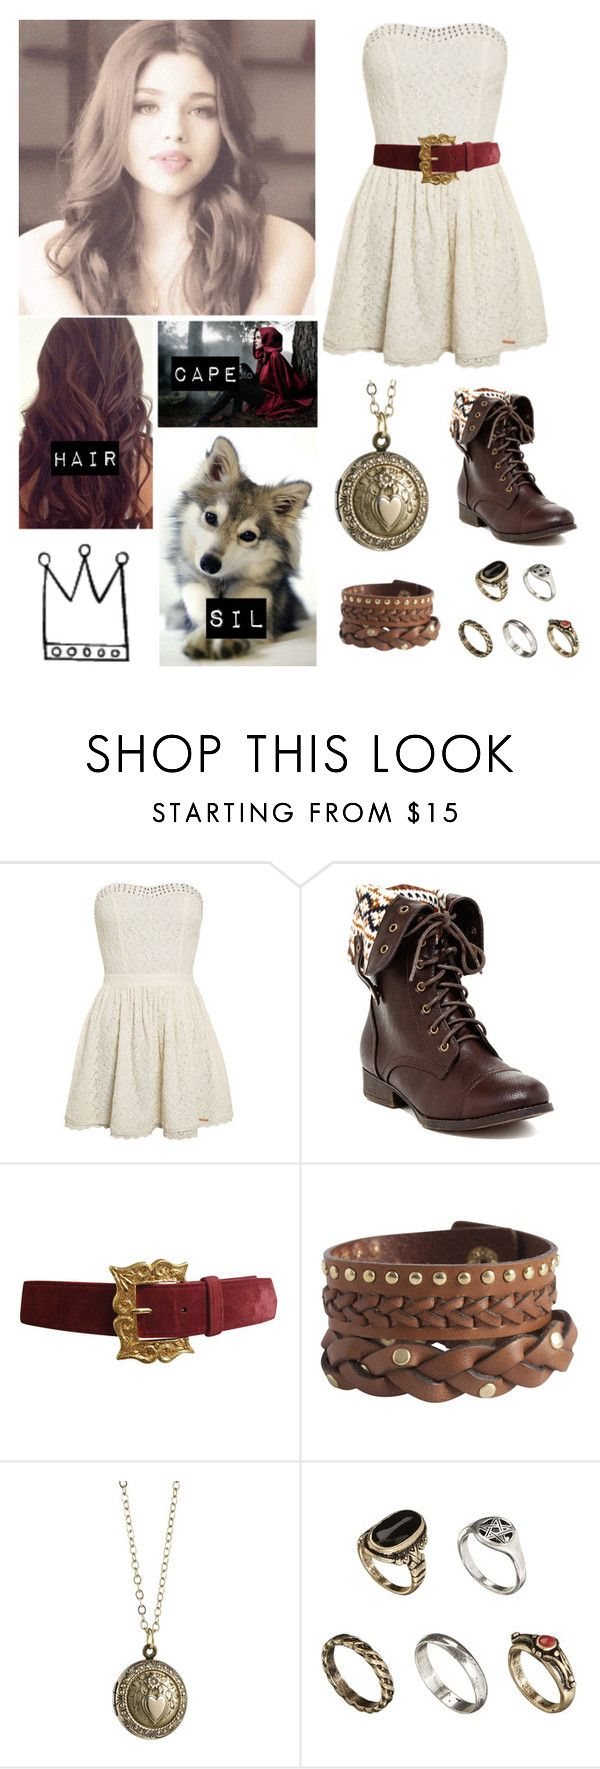 """""""Willow Hood"""" by mikaelsonlegacy ❤ liked on Polyvore featuring Superdry, Christian Lacroix, Pieces, Alexis Bittar, ASOS, disney, OC, fanfiction, Descendants and willowhood"""